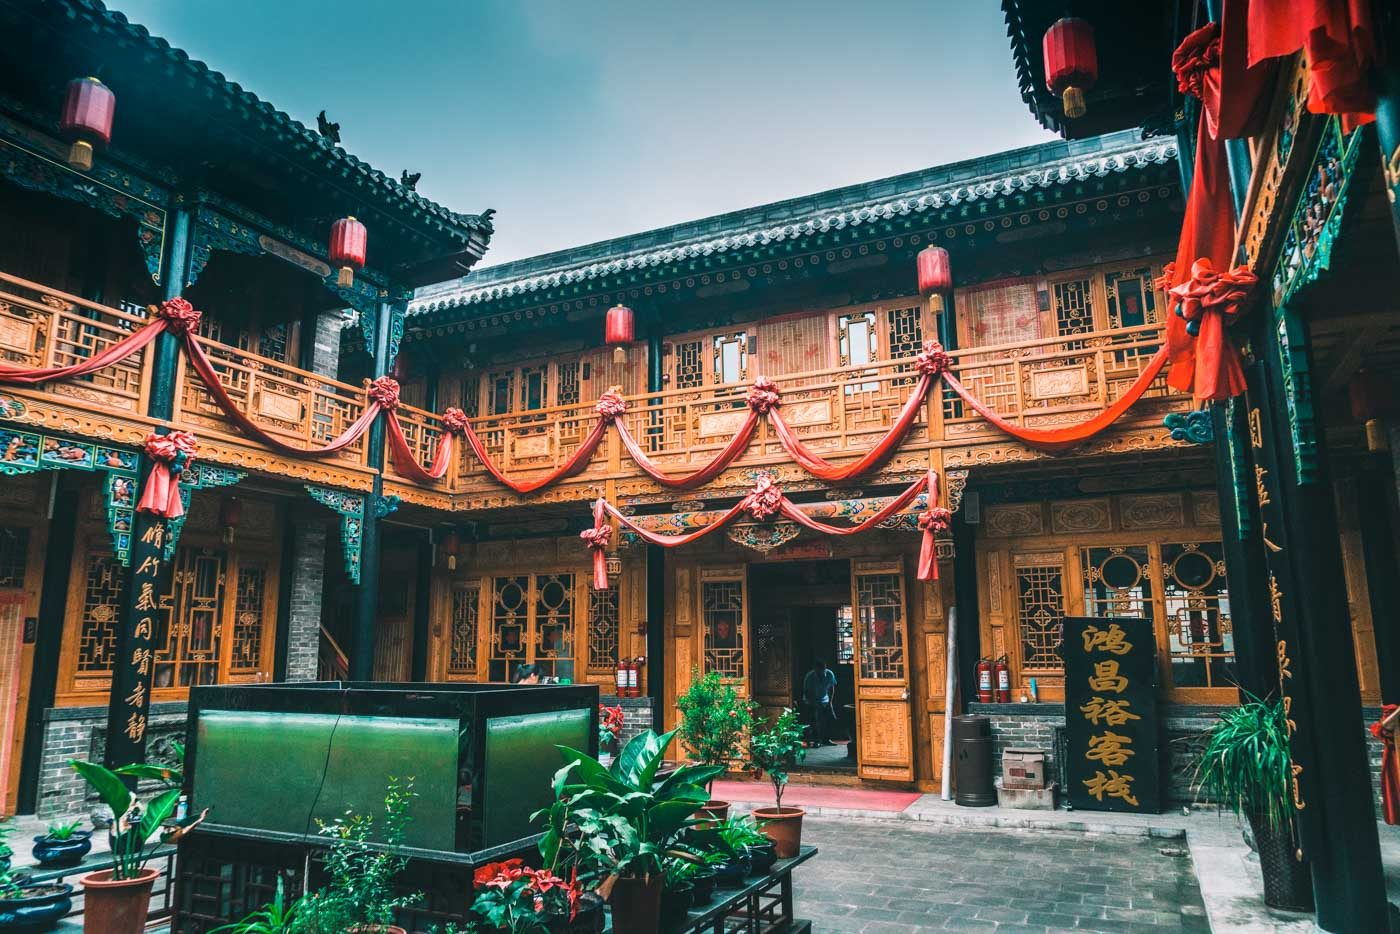 Traditional courtyard in a locally run hotel in Pingyao, China